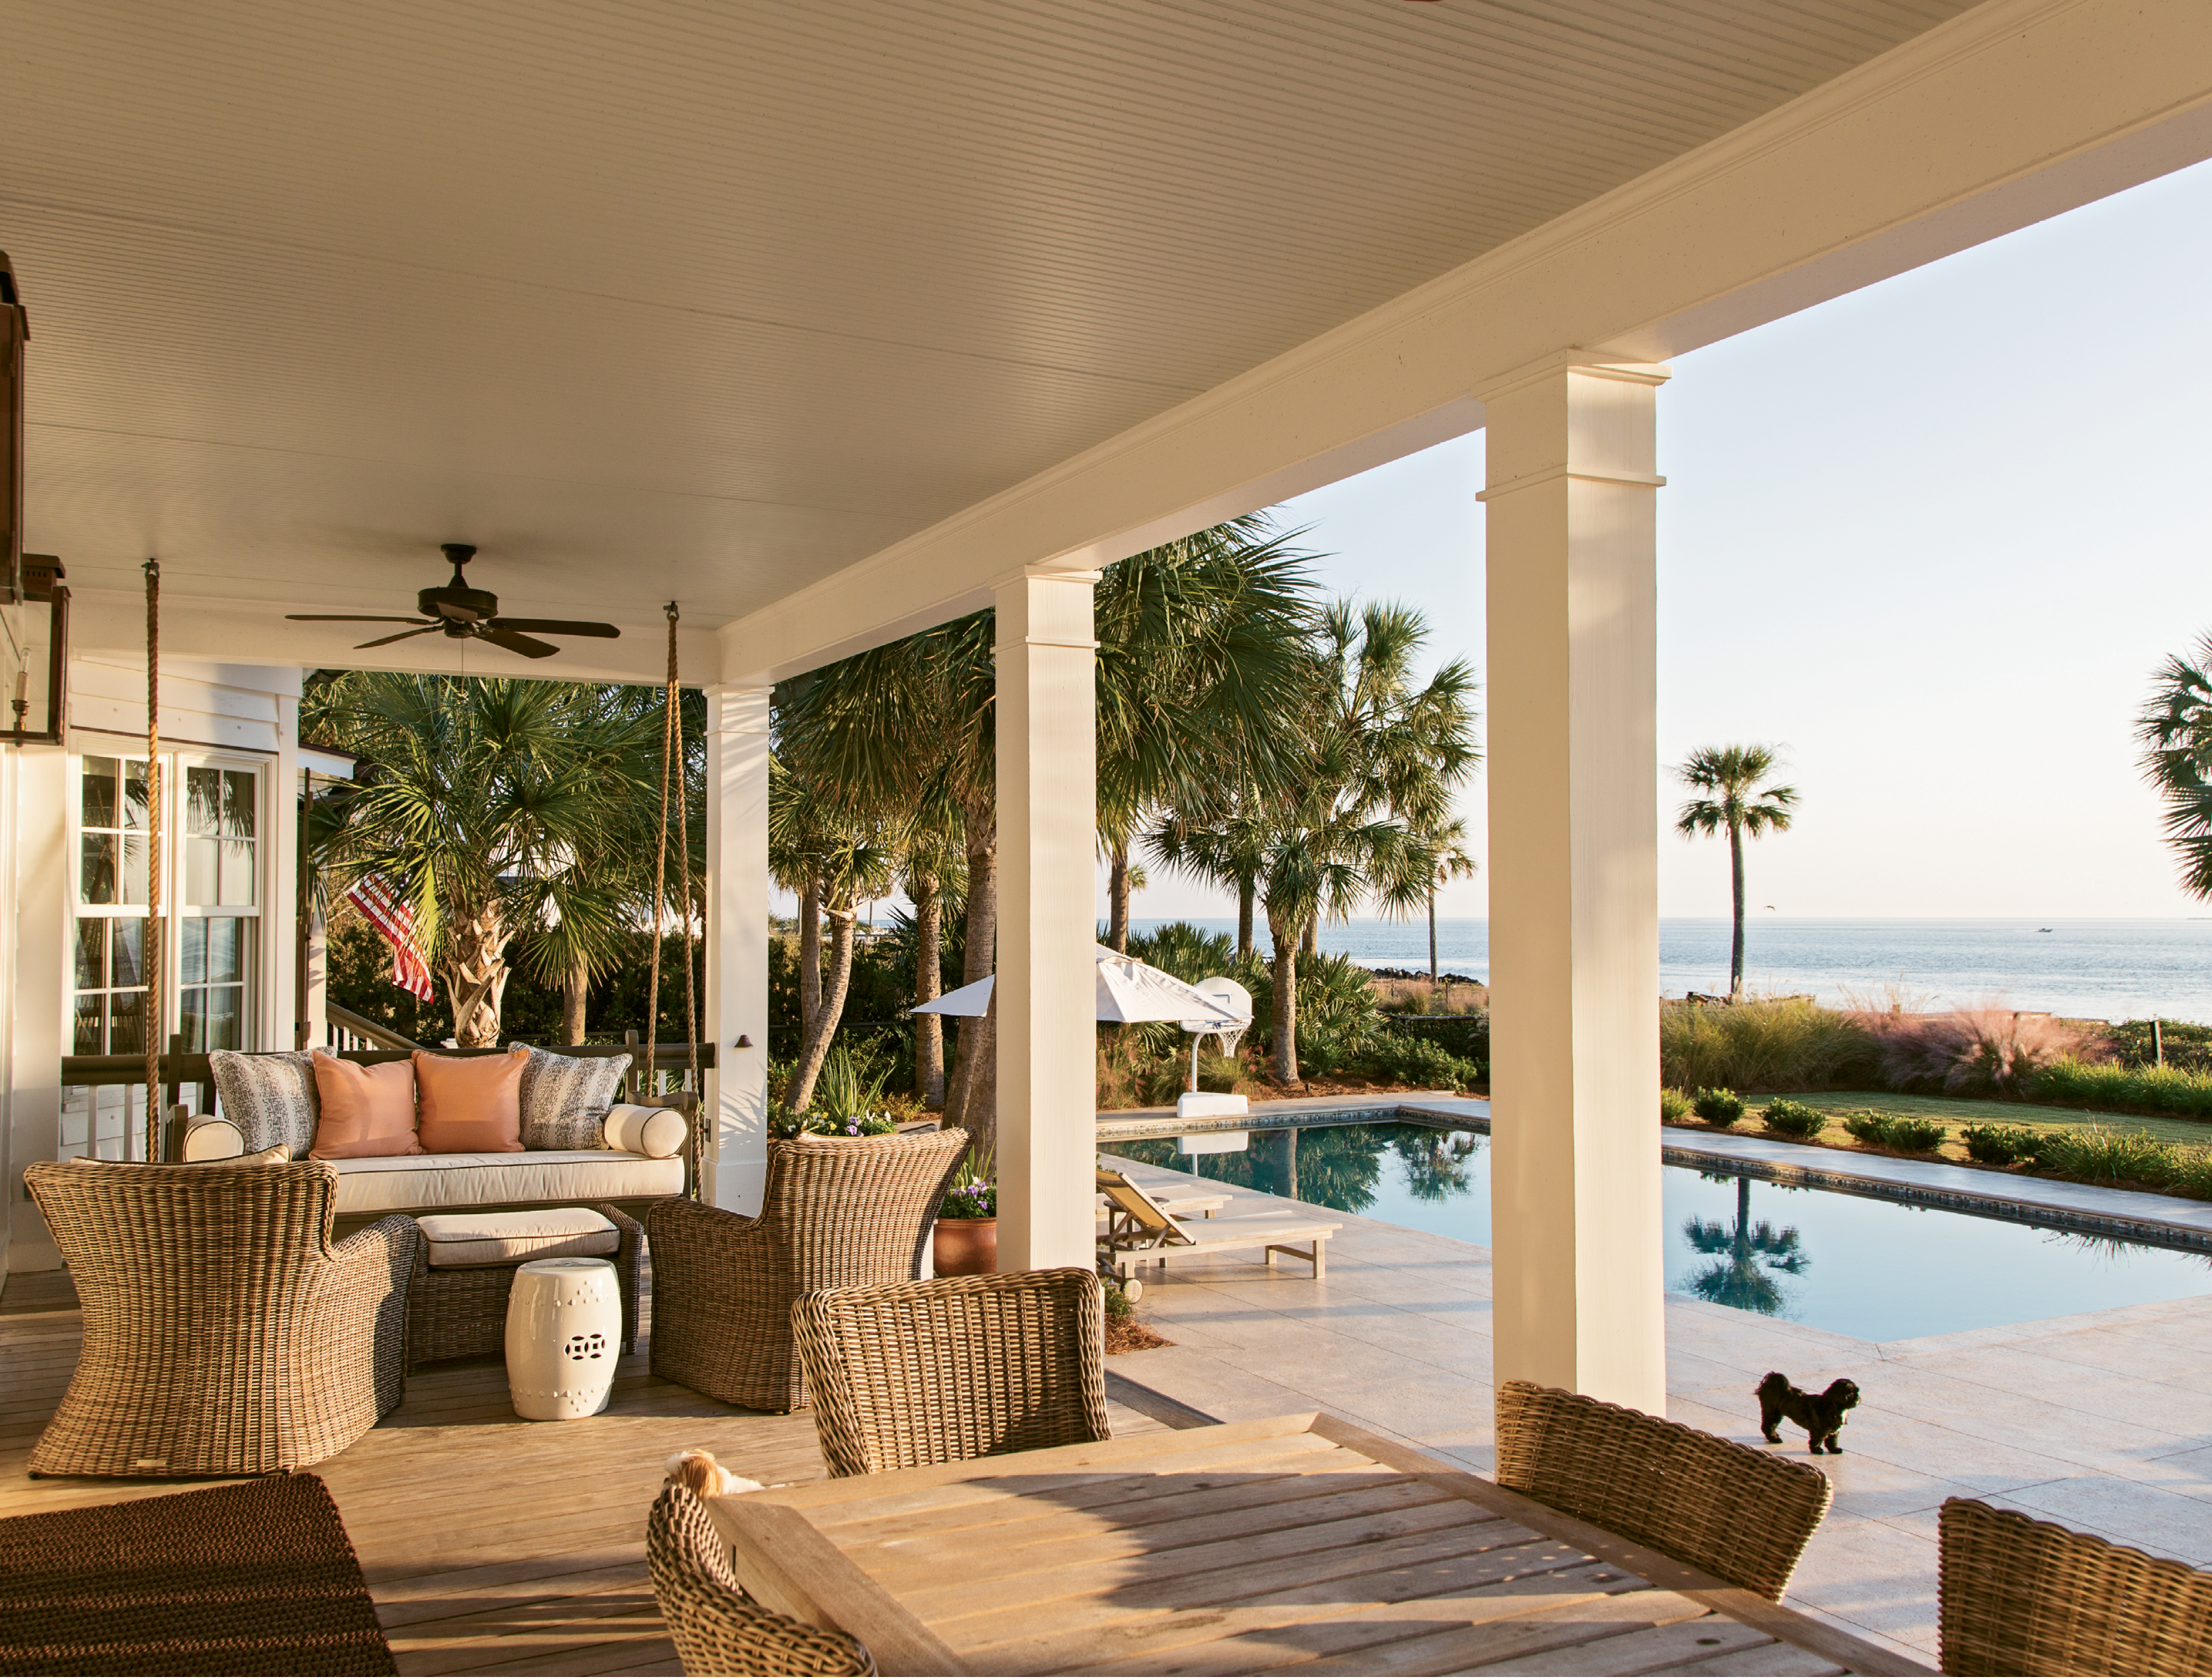 """JUMP IN: """"We all pretty much live on the back porch,"""" says Tara. Palmetto trees and the harbor provide a scenic backdrop for regular swims and backyard parties, especially the family's annual Fourth of July shindig."""